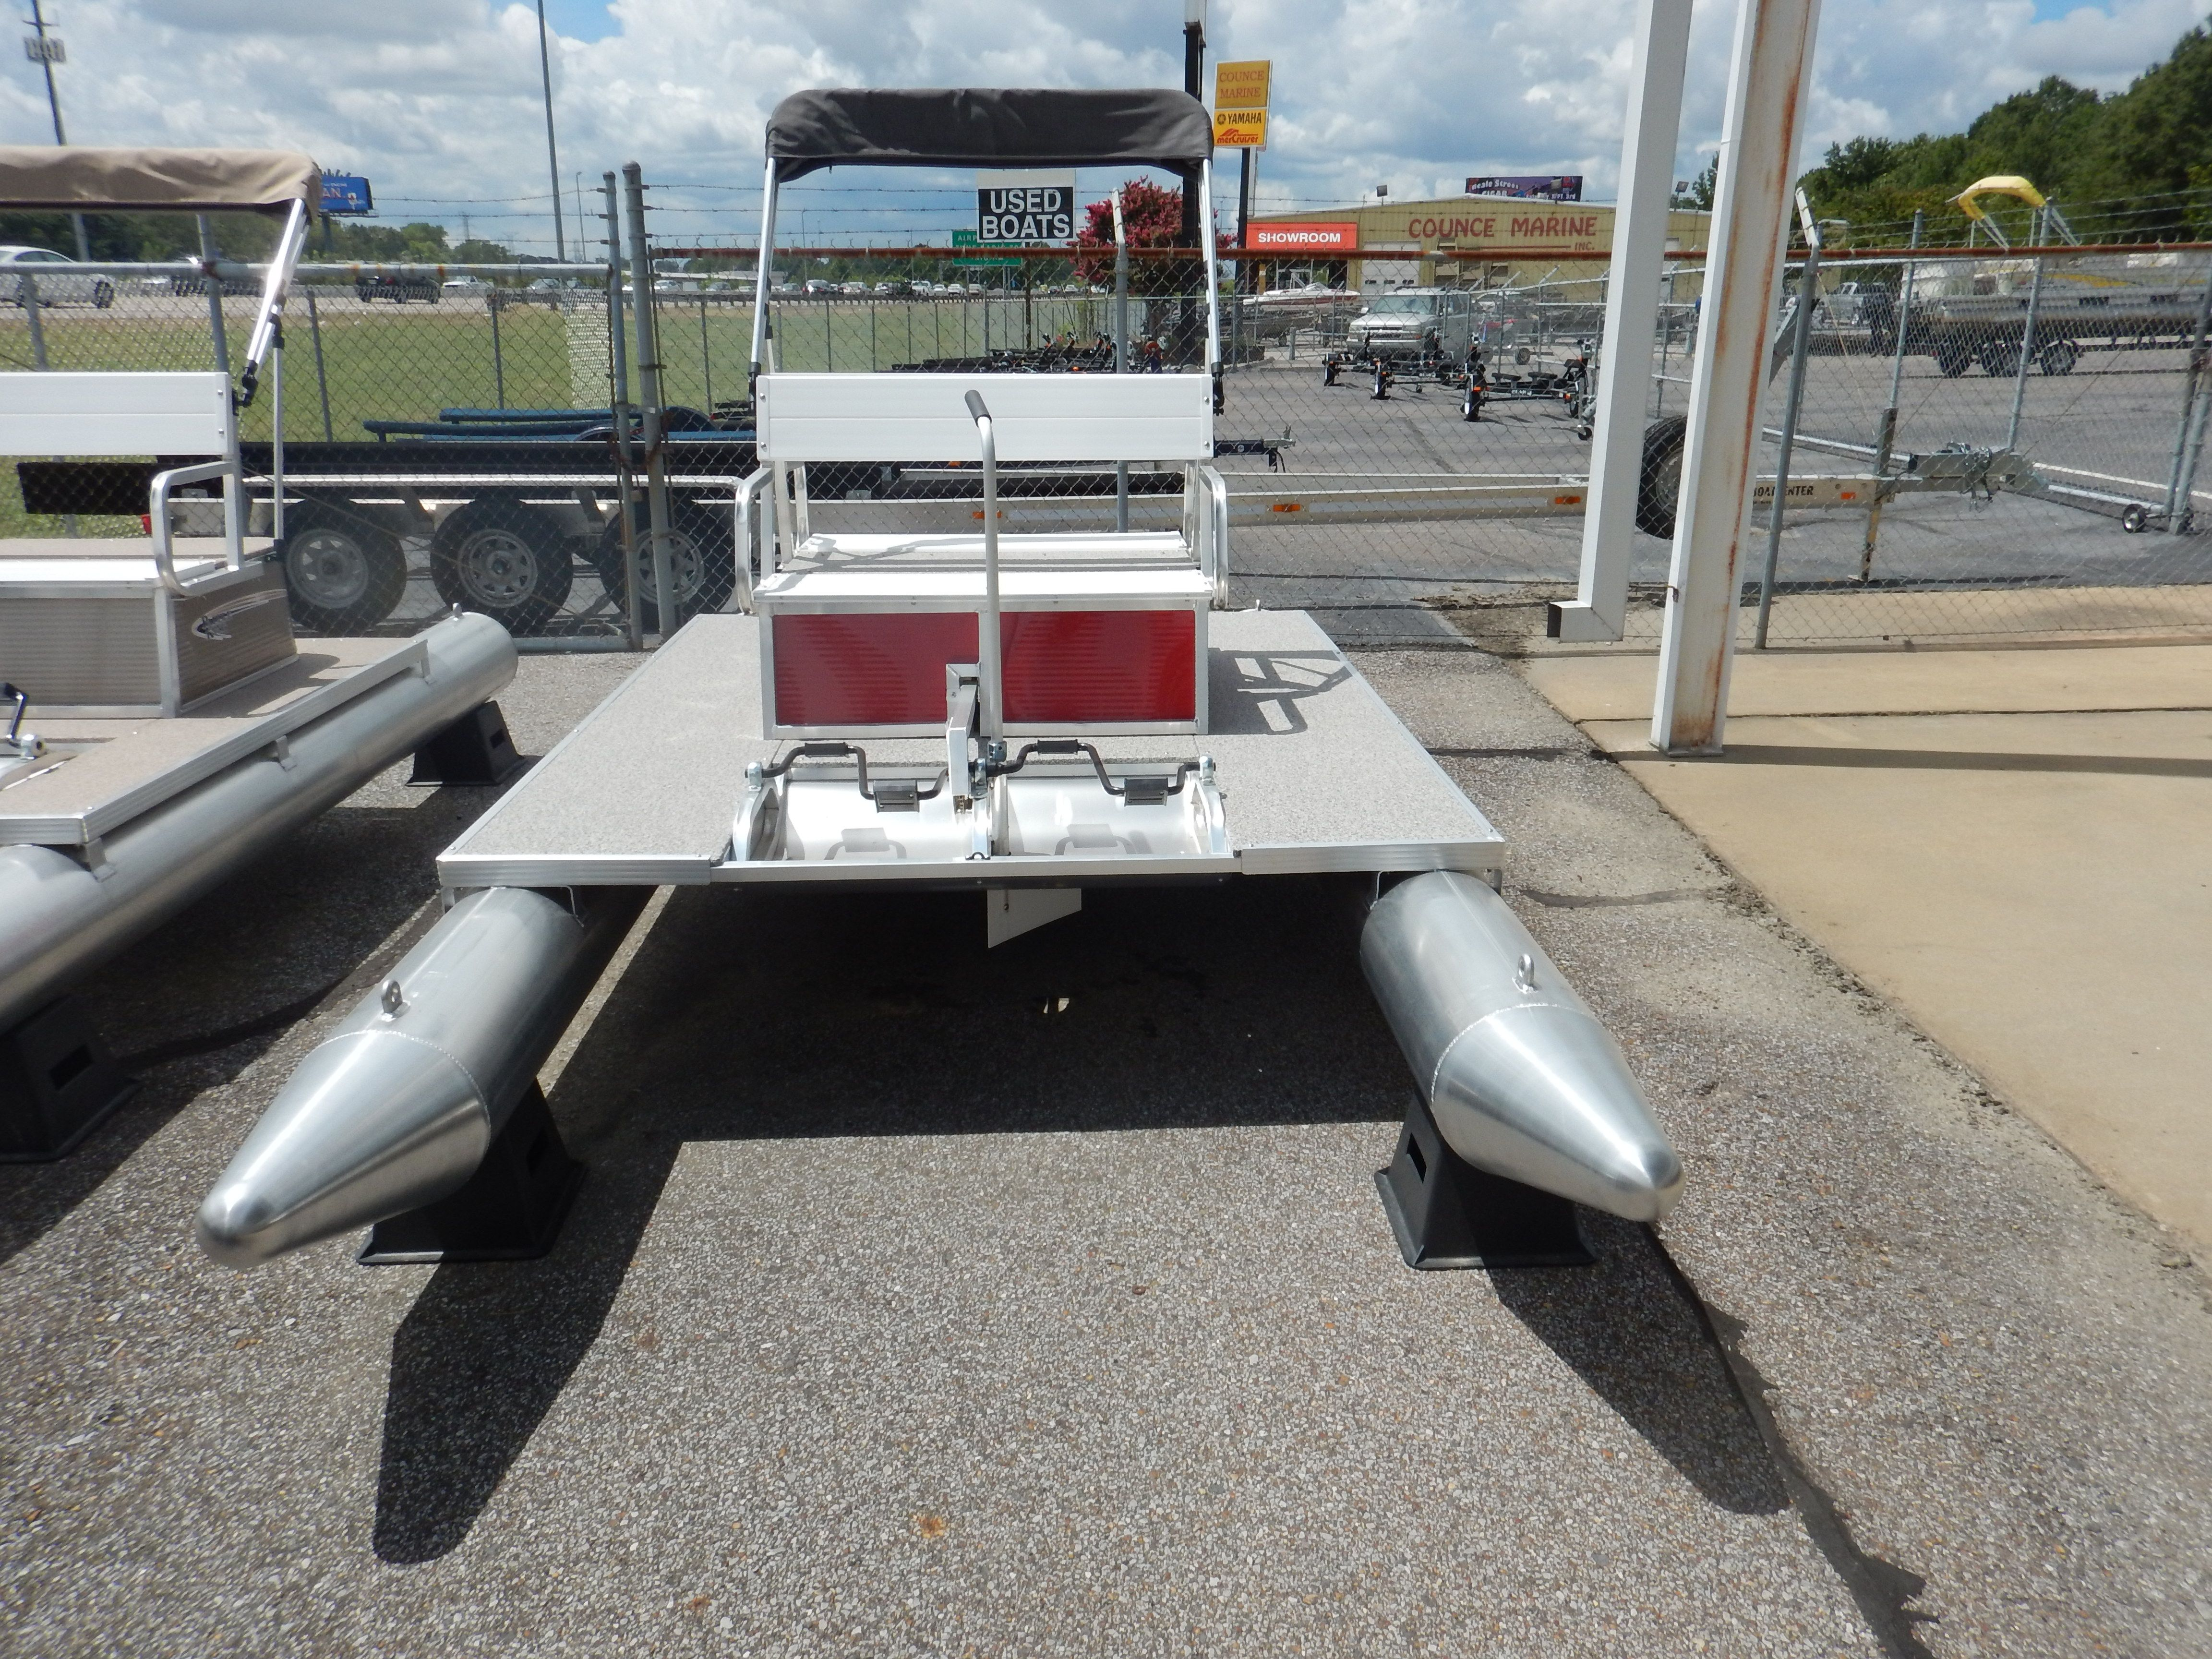 2017 Paddle King PK 4400 Pedal Boat in Memphis, Tennessee